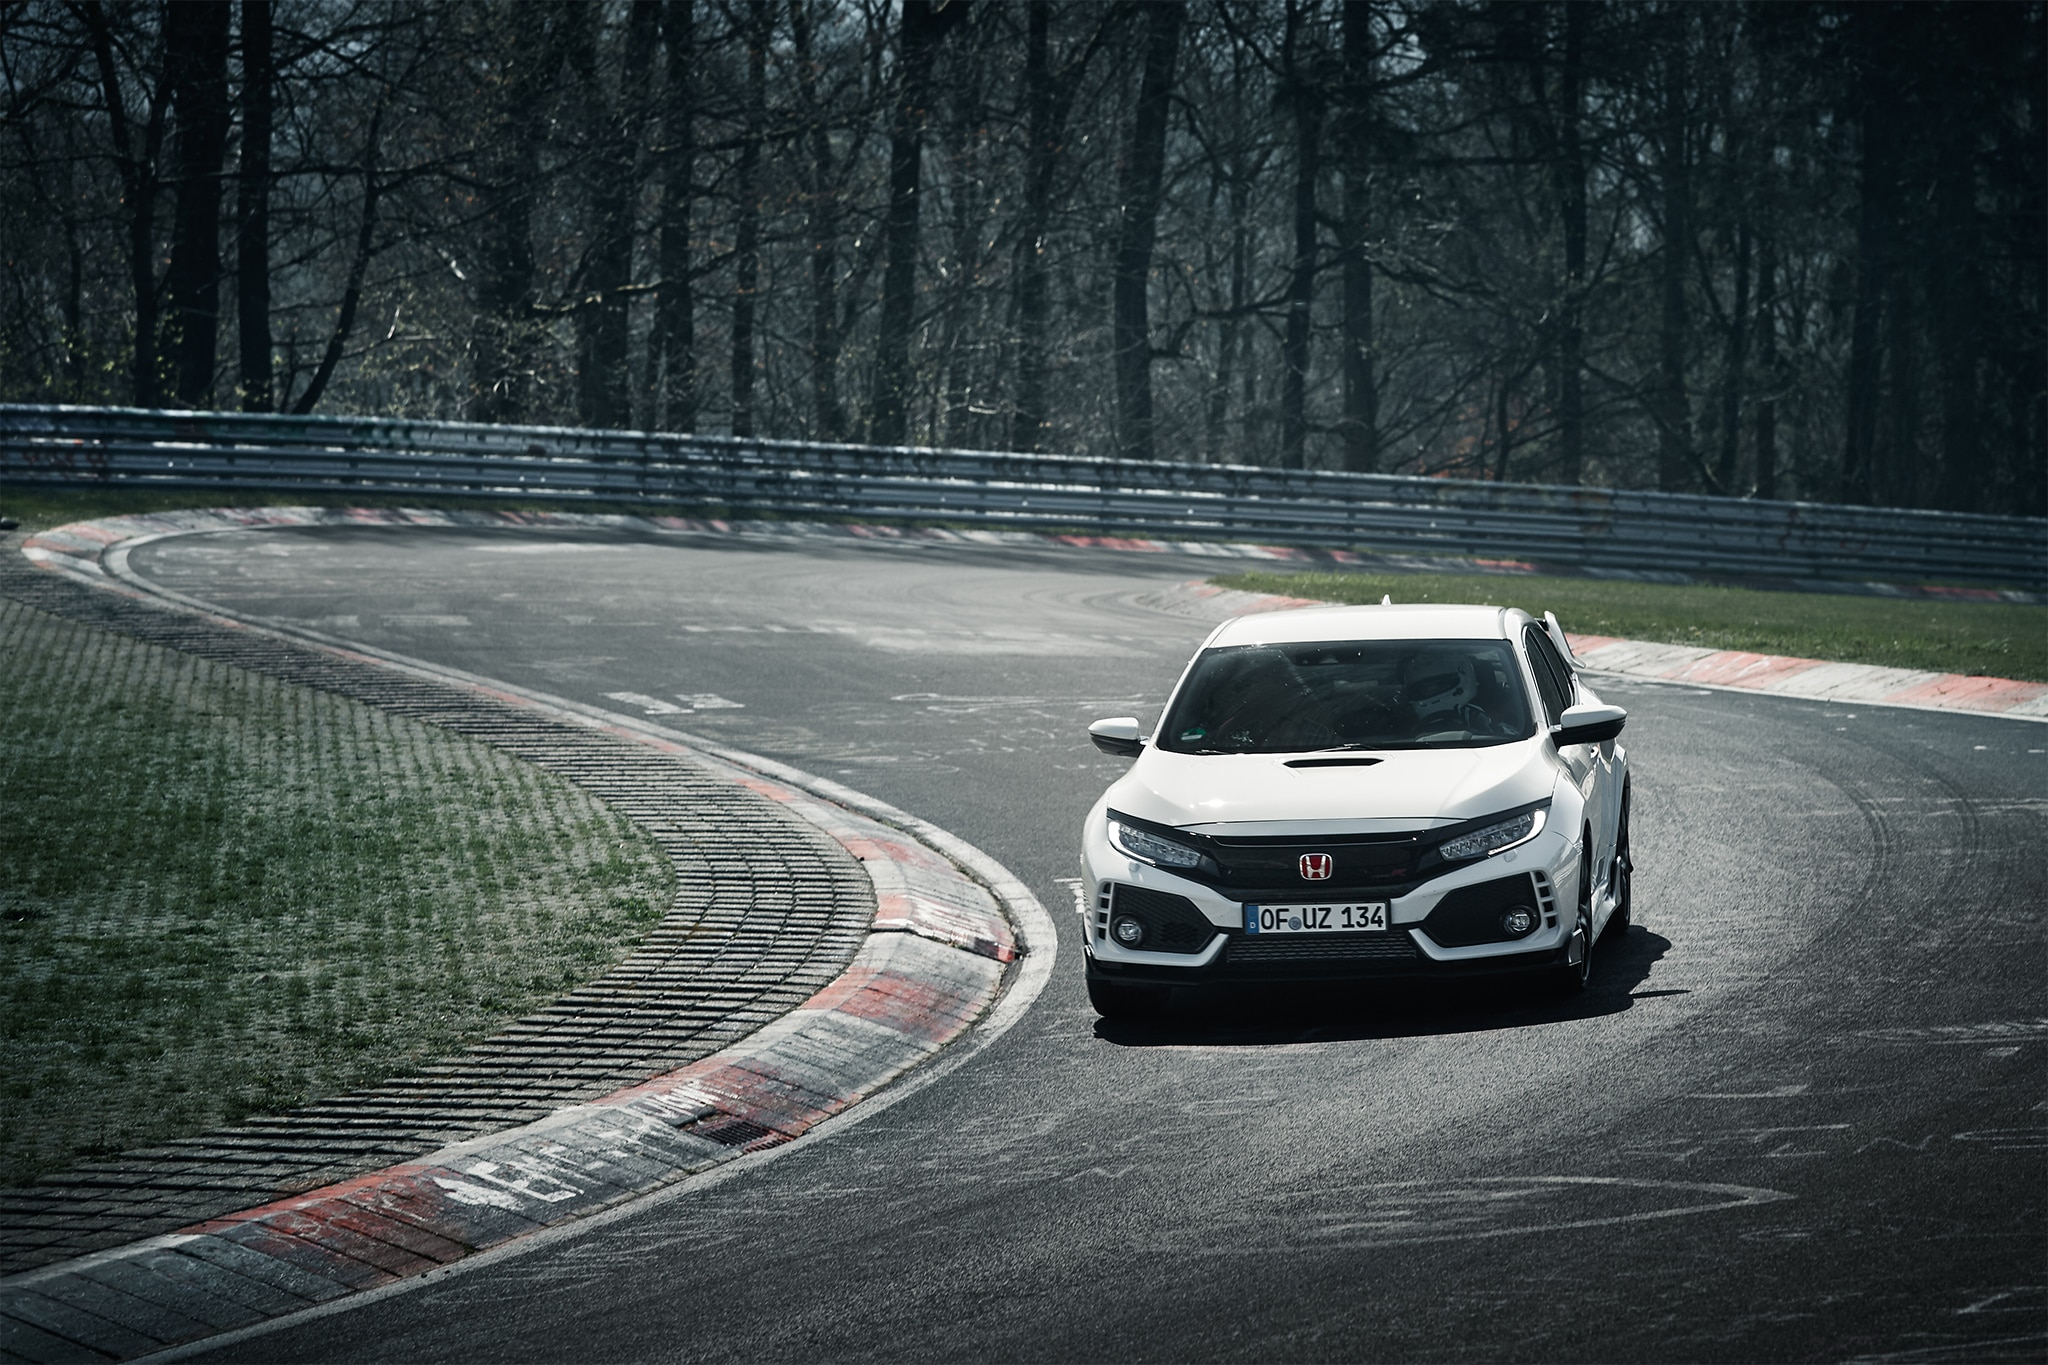 2017 Honda Civic Type R Front View In Motion 03 1